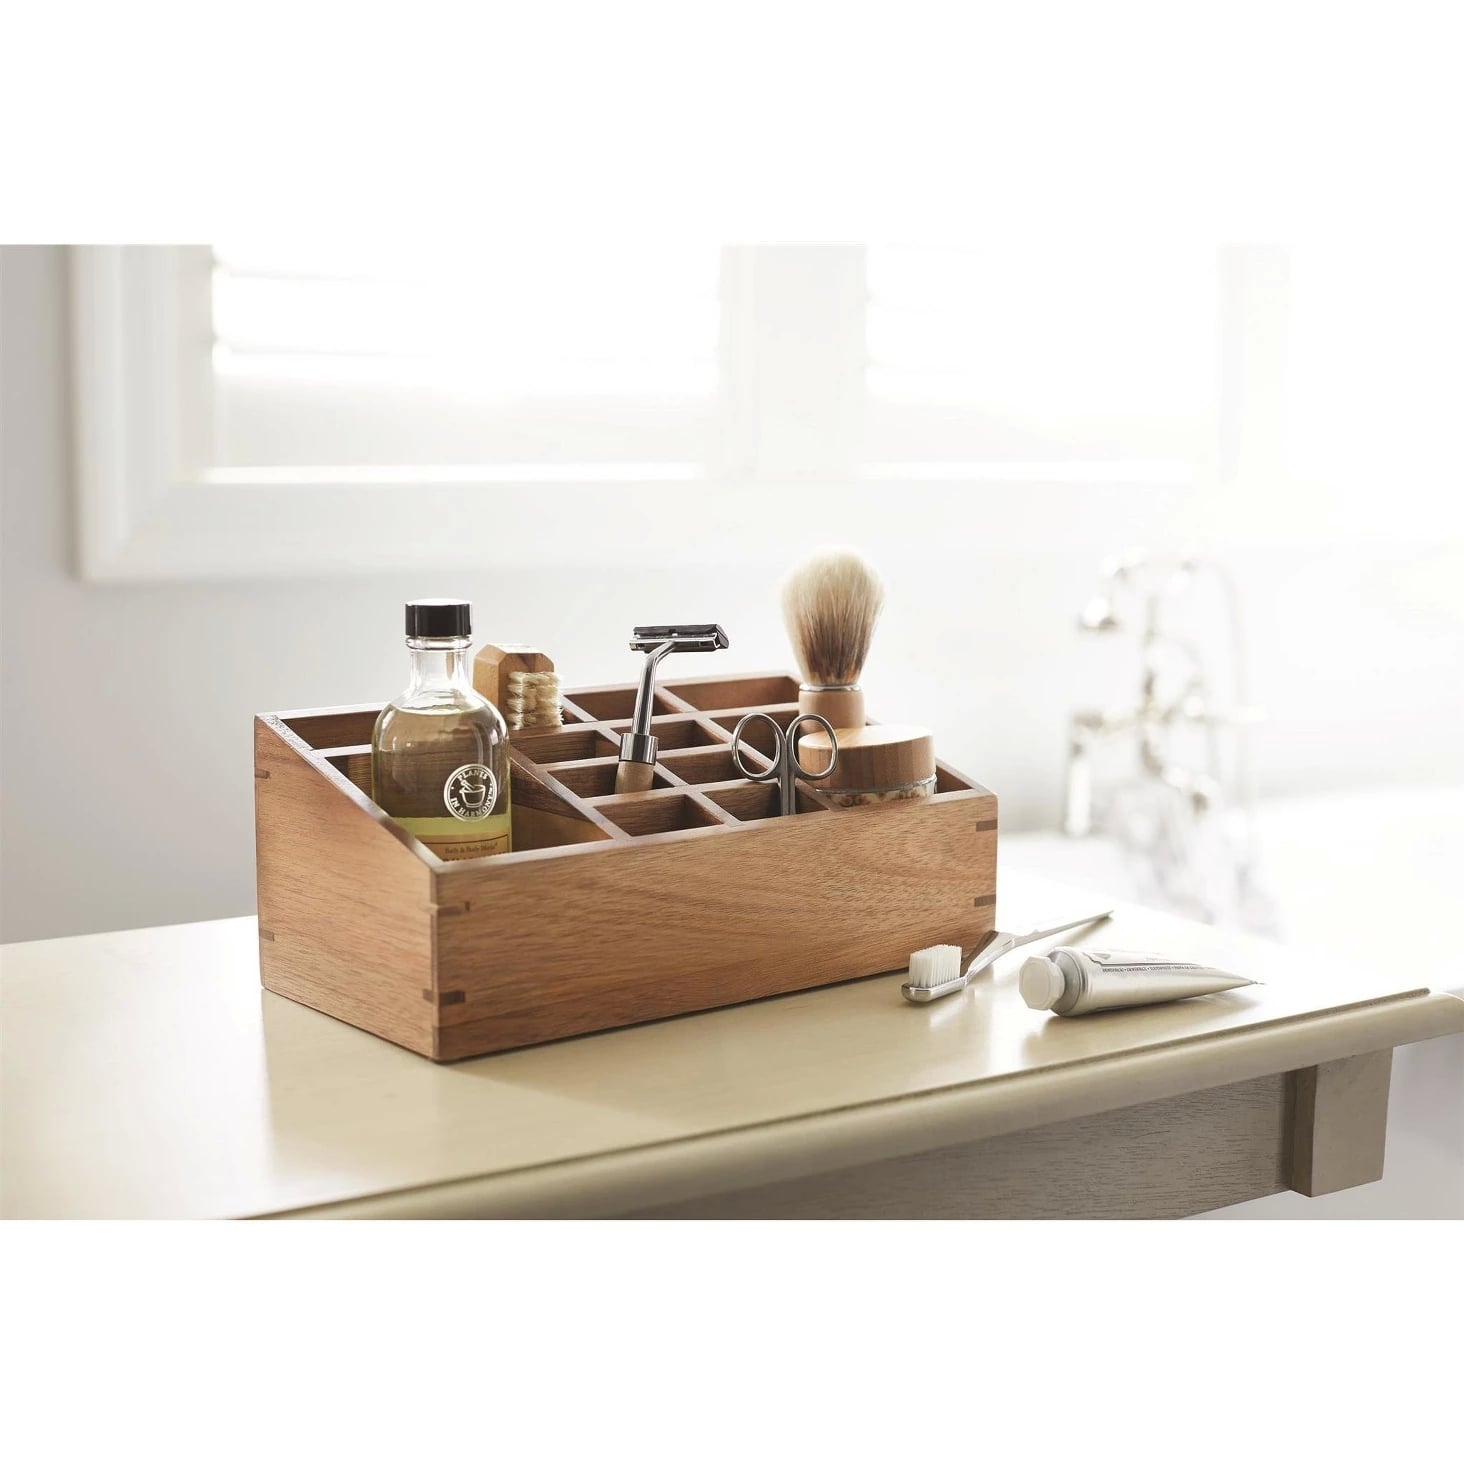 12 Compartment Vanity Organizer In Wood Go Ahead And Thank Target Now Because These Organizers Are Bathroom Game Changers Popsugar Home Photo 25